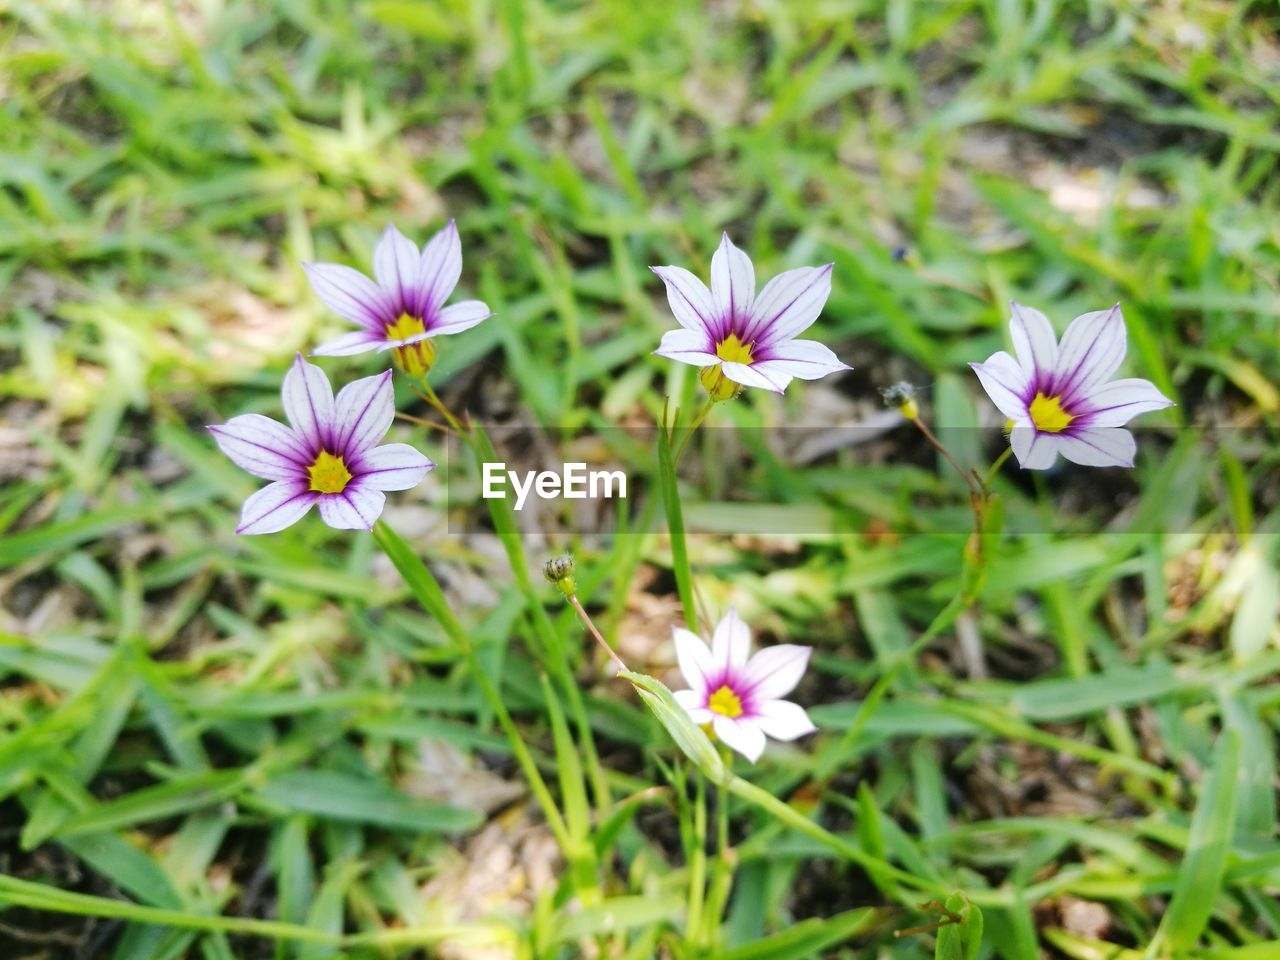 flowering plant, flower, freshness, plant, vulnerability, beauty in nature, fragility, petal, growth, inflorescence, close-up, flower head, land, field, nature, day, selective focus, no people, purple, white color, outdoors